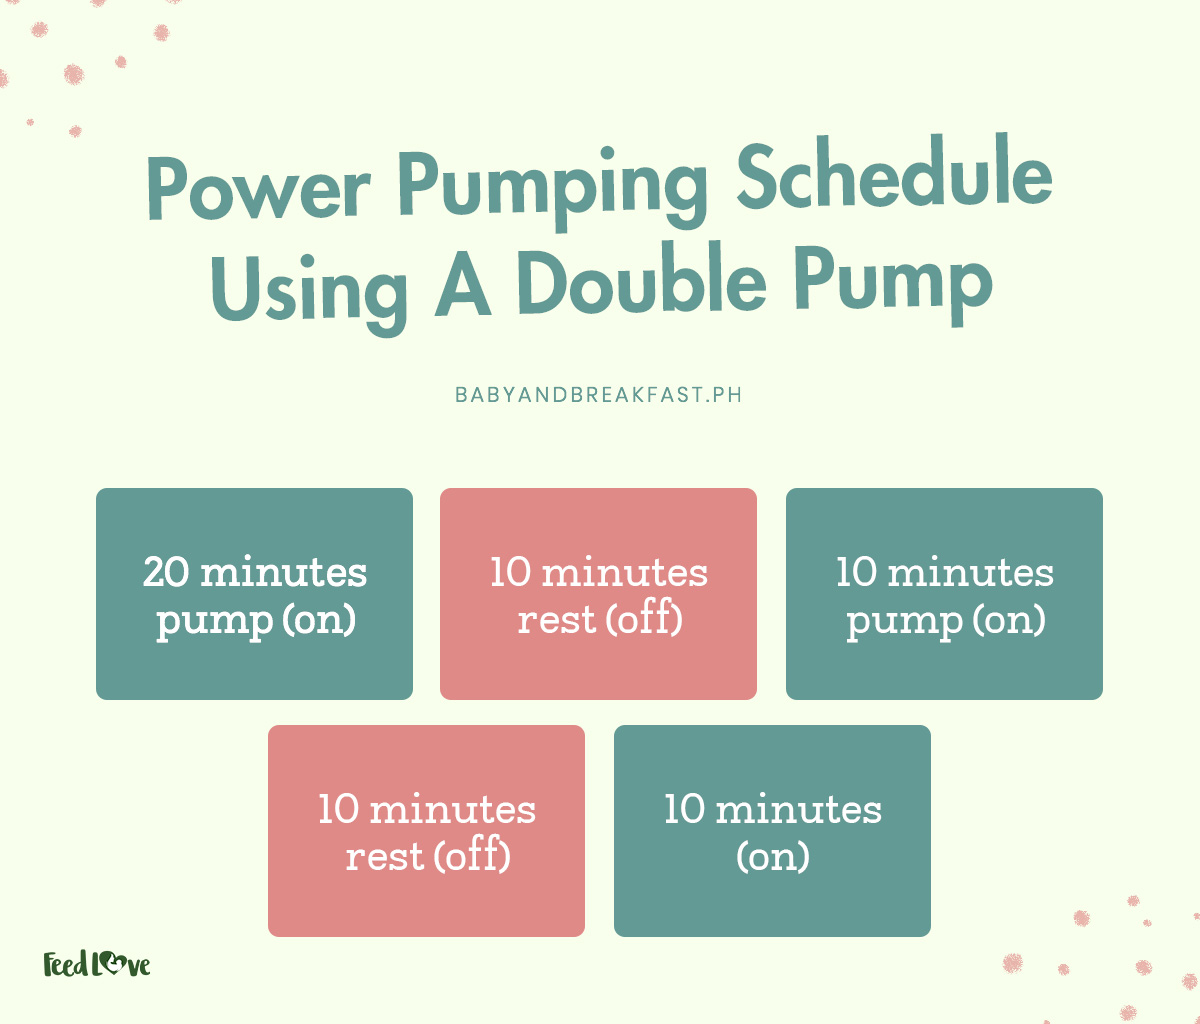 Power Pumping Schedule Using a Double Pump 20 minutes pump (on) 10 minutes rest (off) 10 minutes pump (on) 10 minutes rest (off) 10 minutes (on)